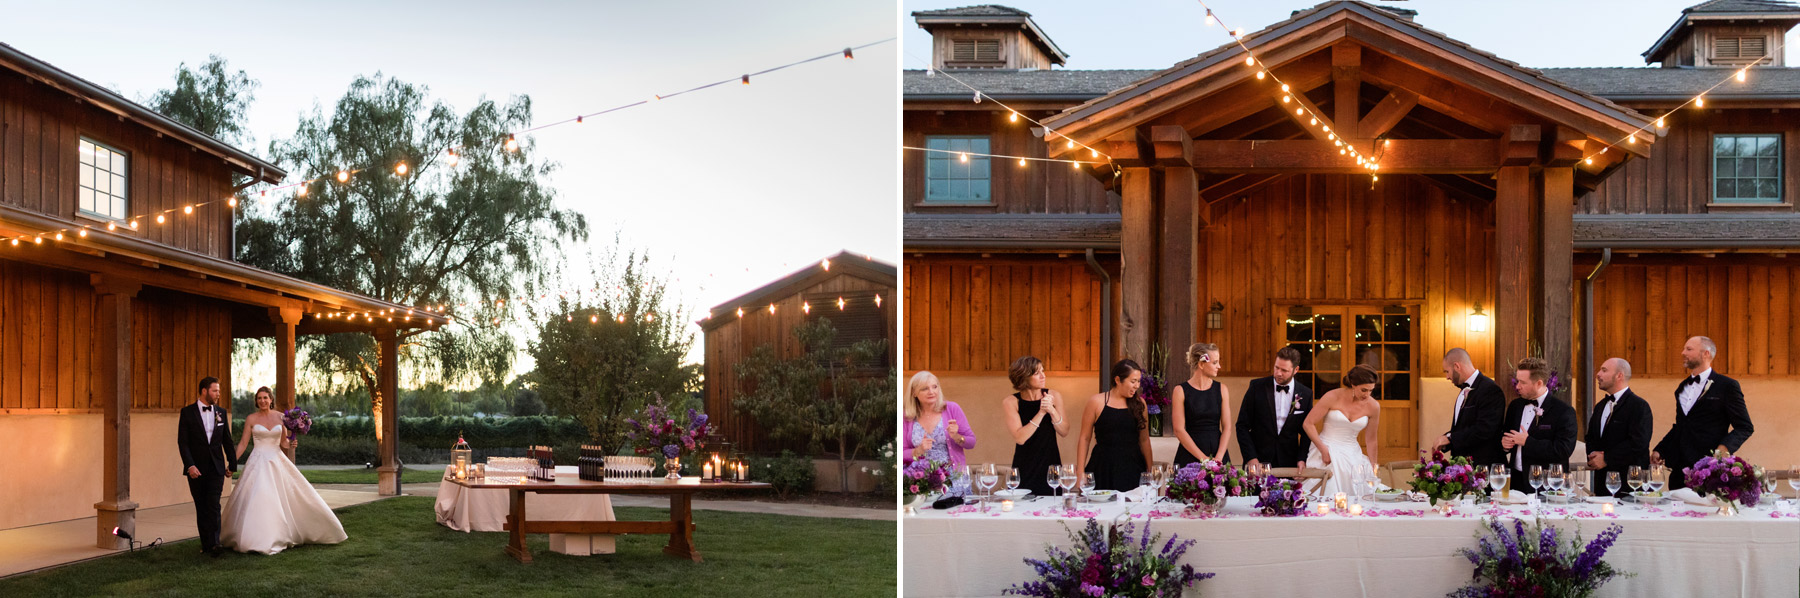 dinner party wedding at roblar winery